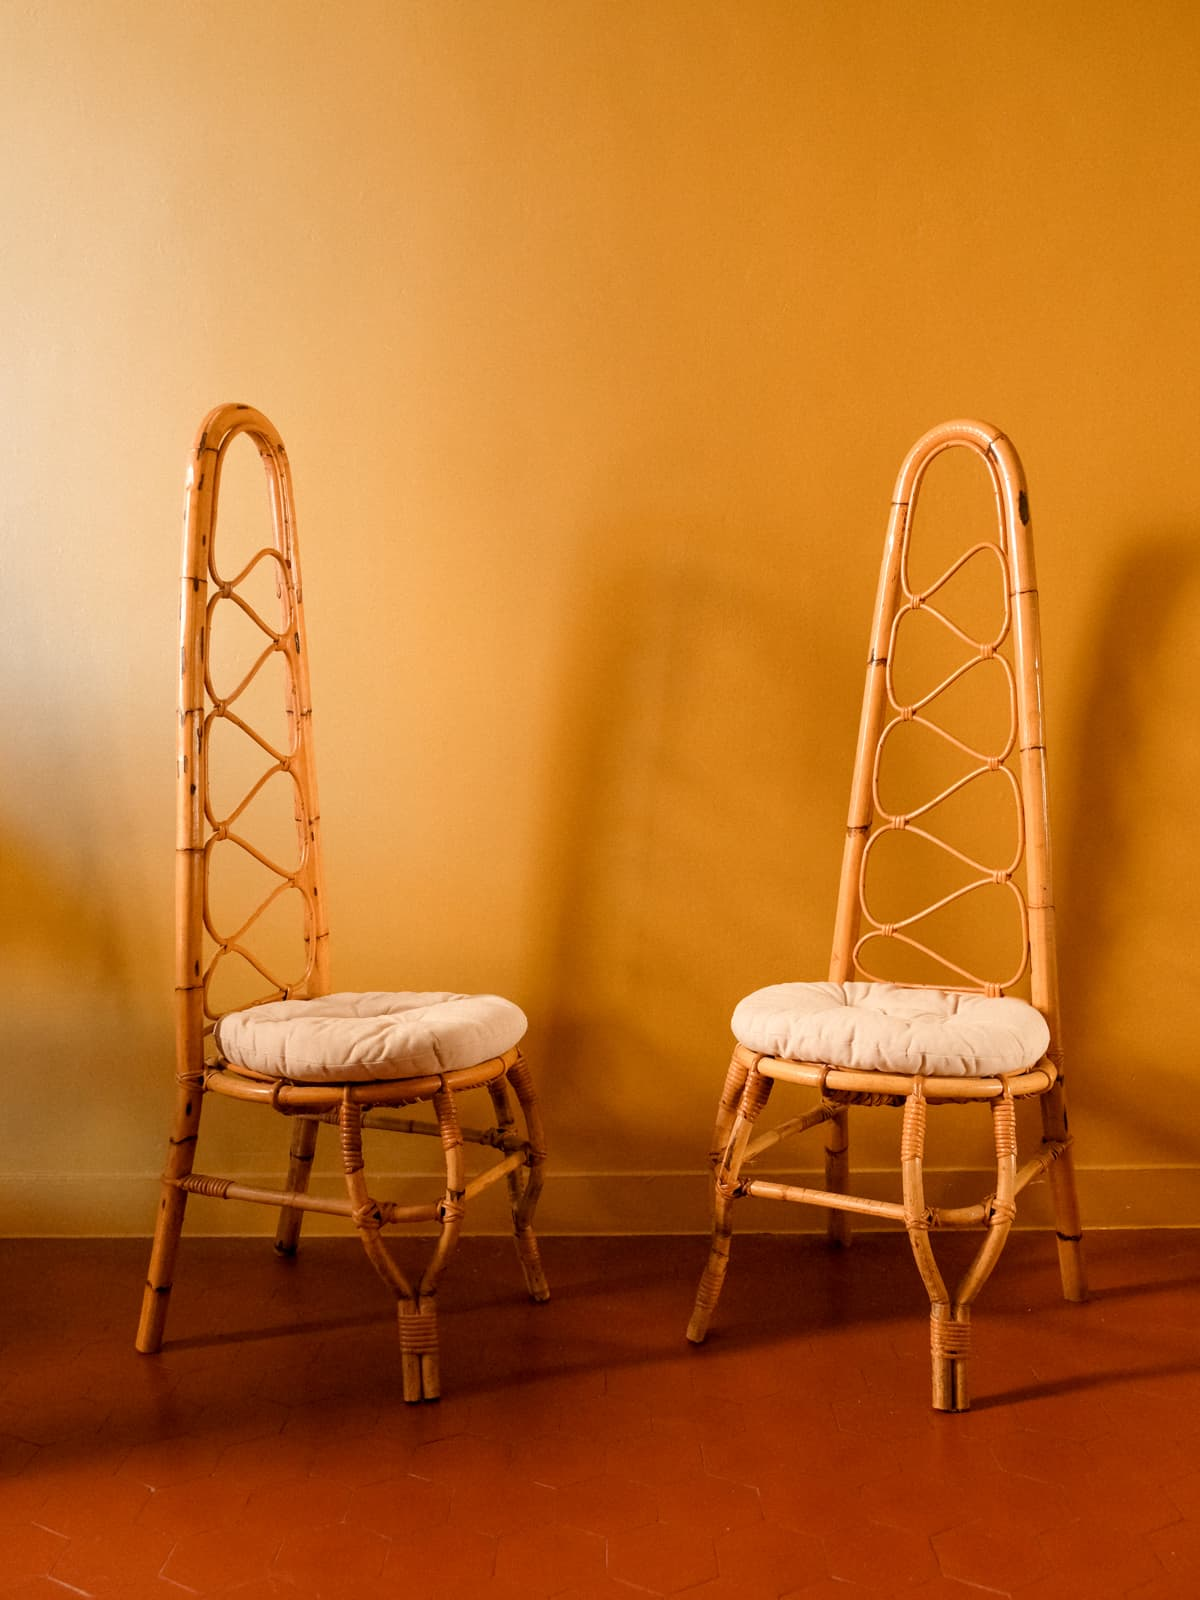 Pair of high back rattan chairs, 60's